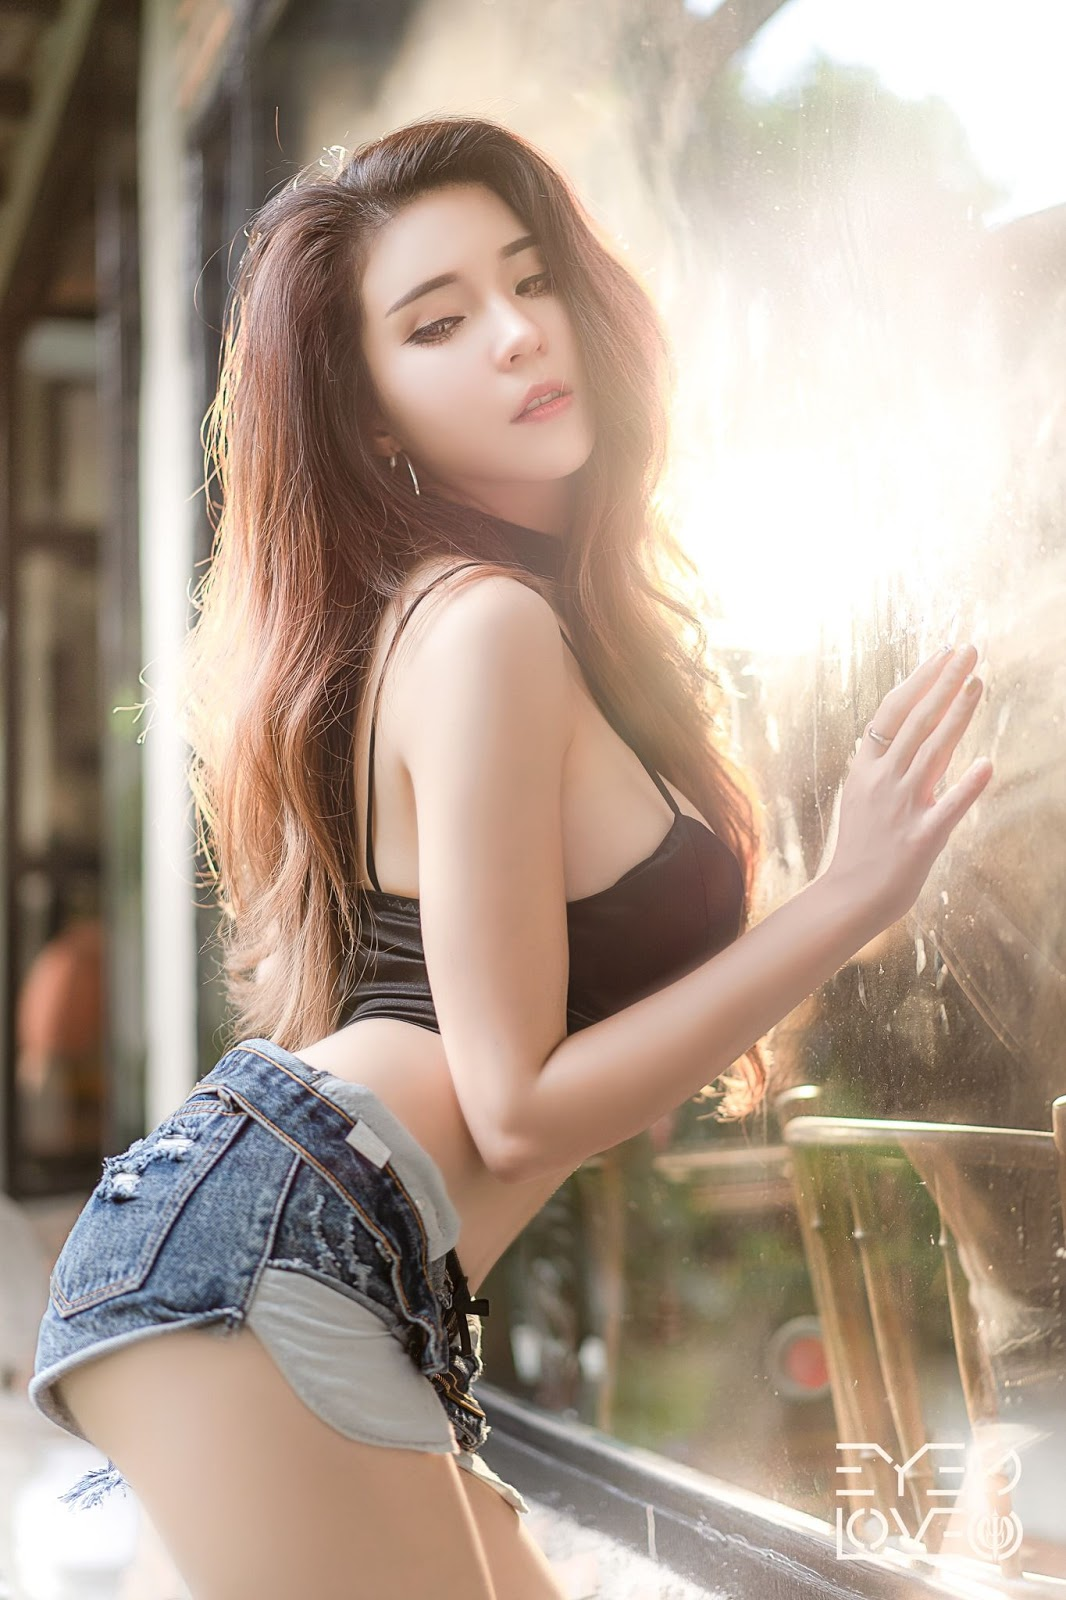 Thailand hot model - Janet Kanokwan Saesim - Black leather and jean - Picture 10